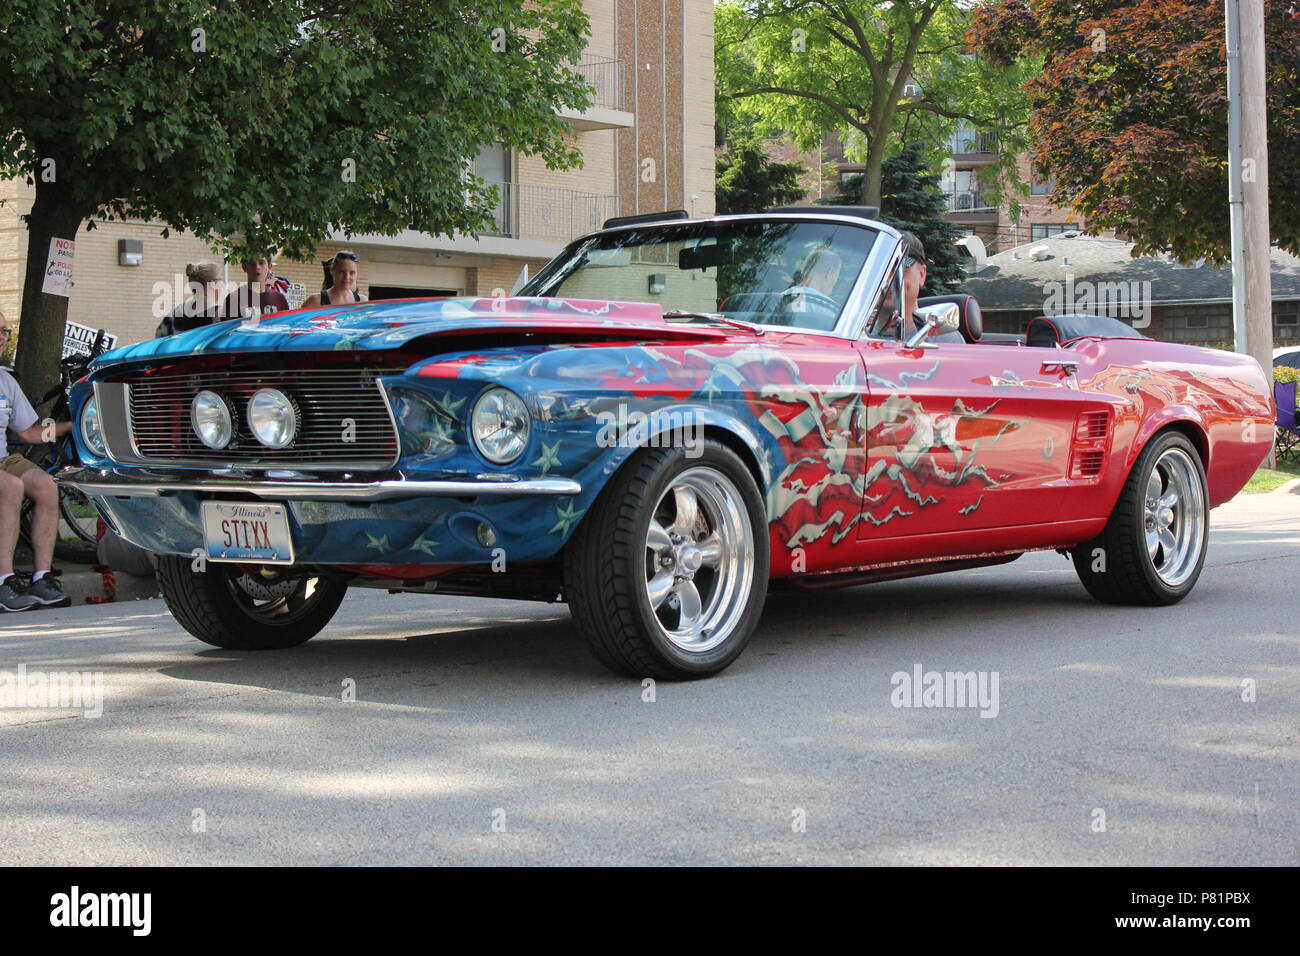 b1bc39de5 Red White and Blue Ford Mustang convertible with a custom paint job  parading in the Fourth